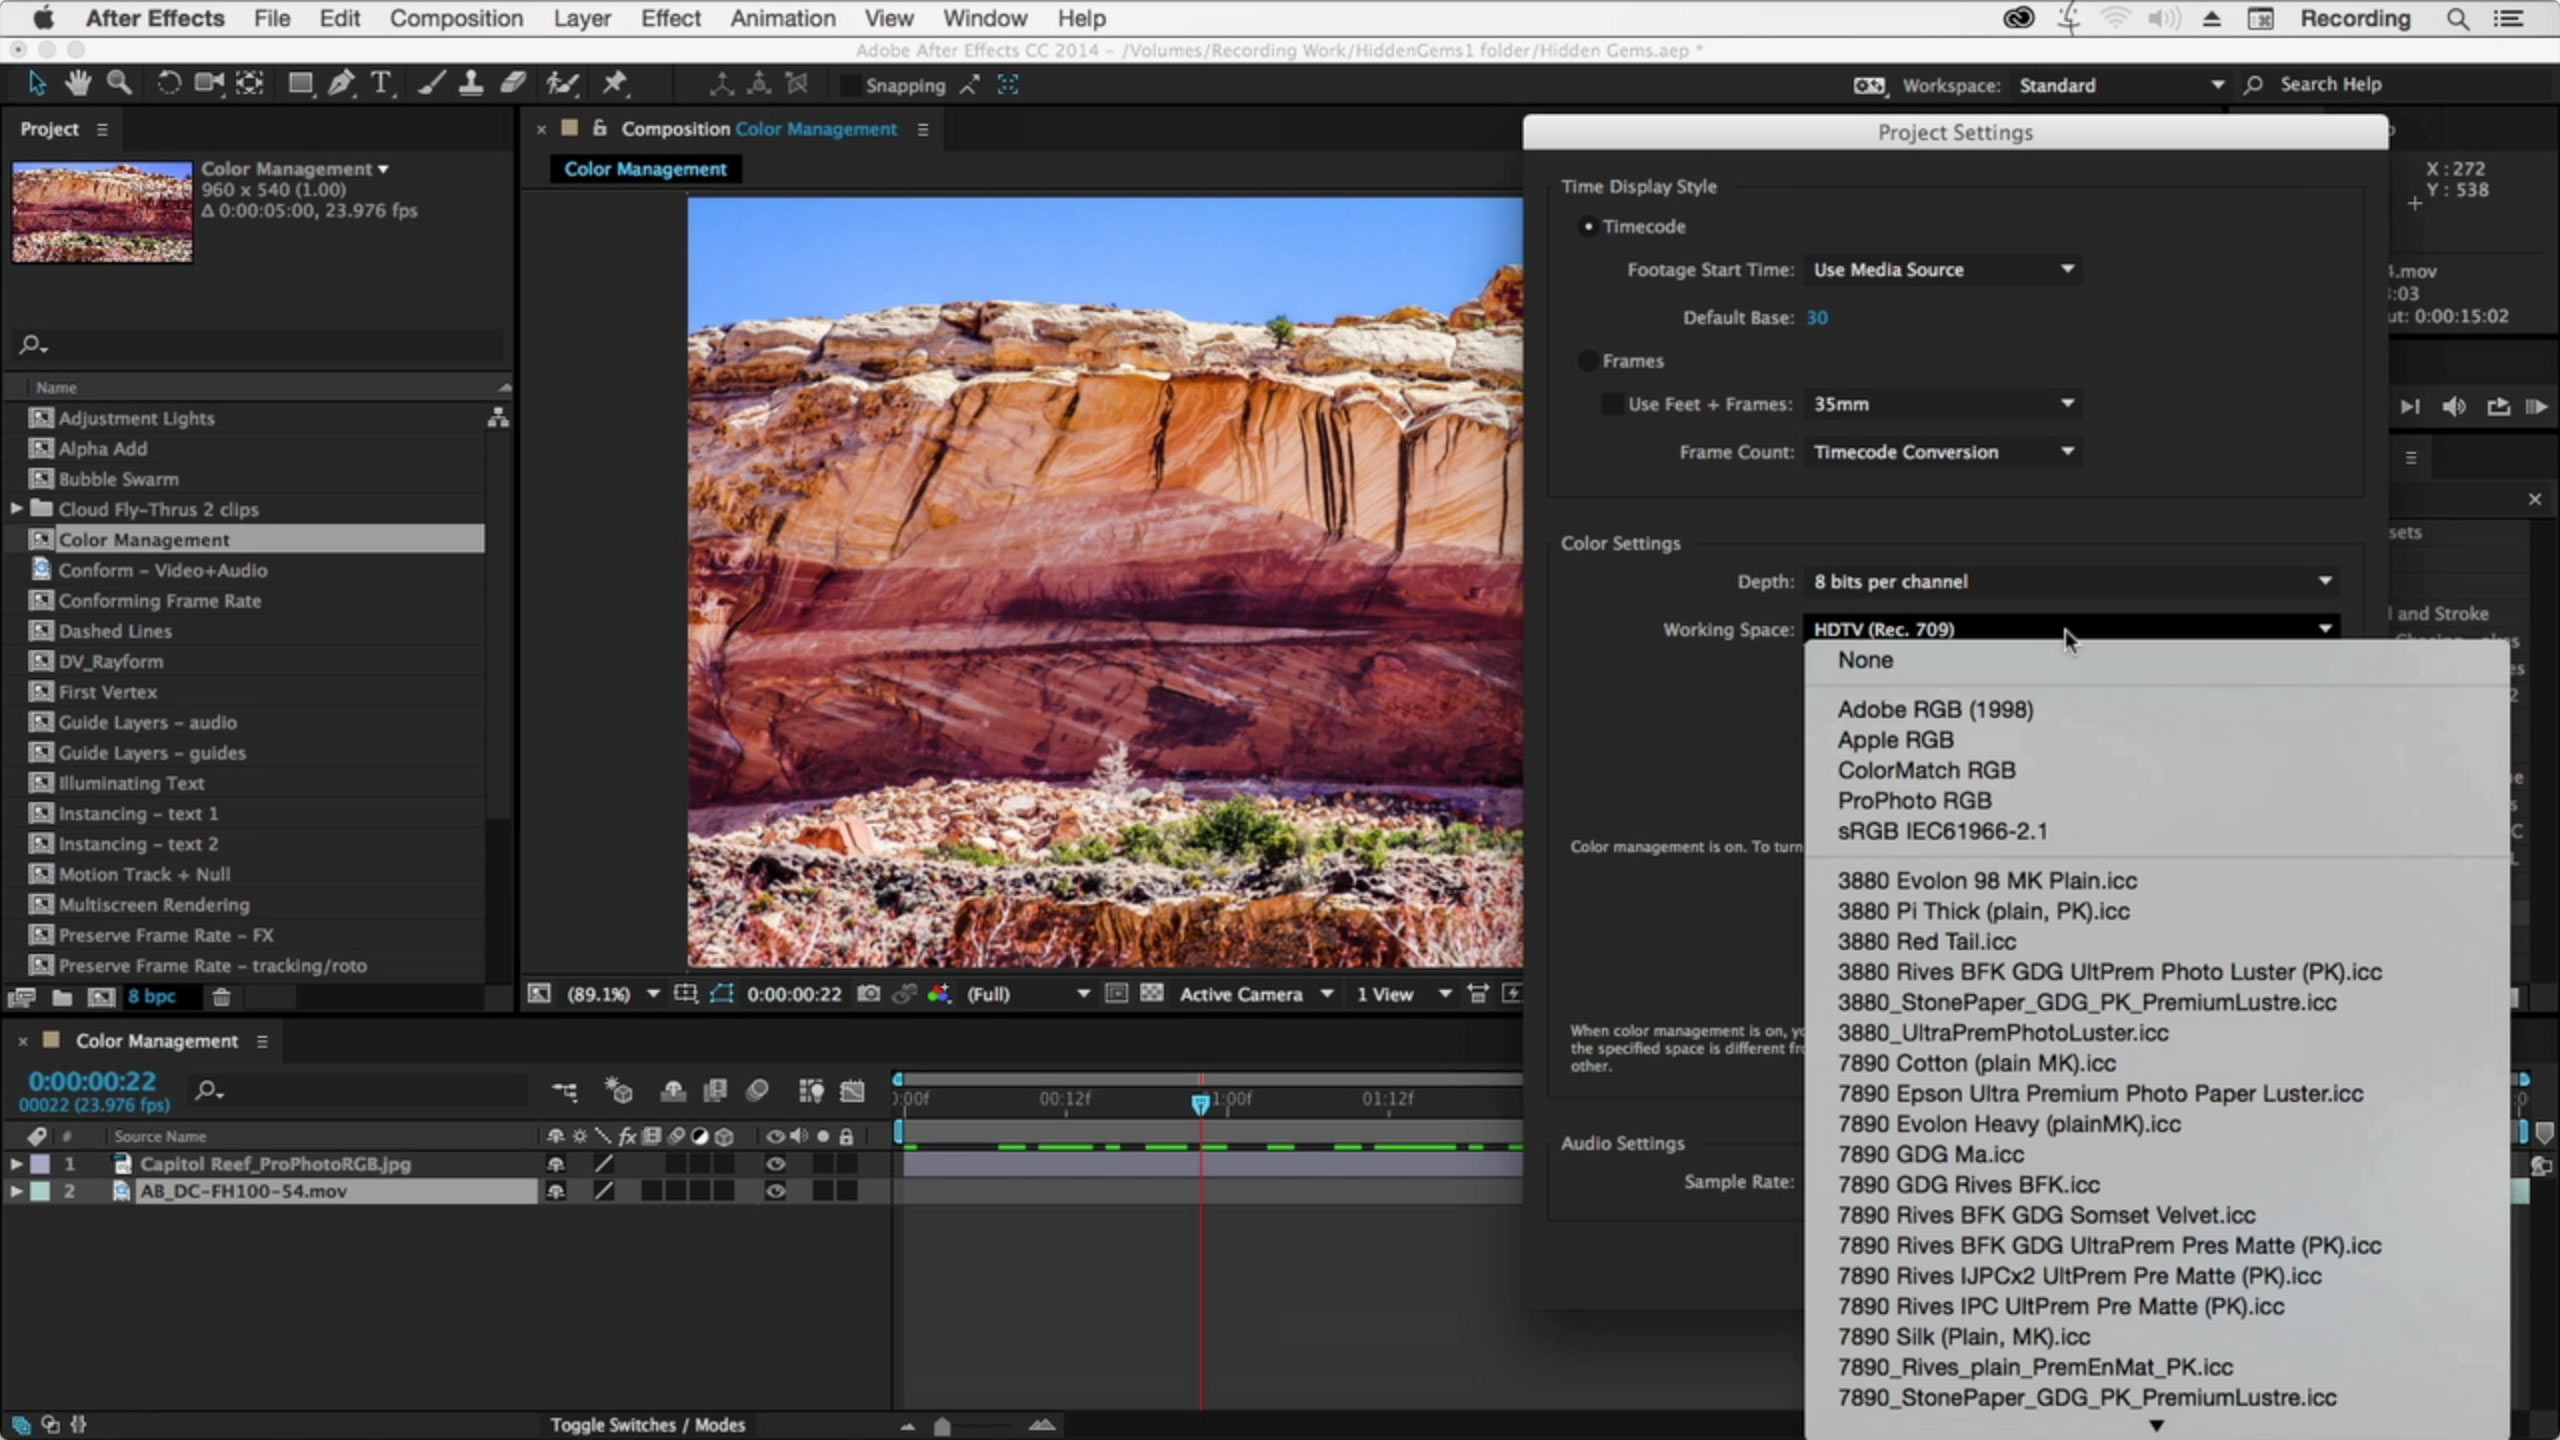 After Effects Hidden Gems: Color Working Space by Chris and